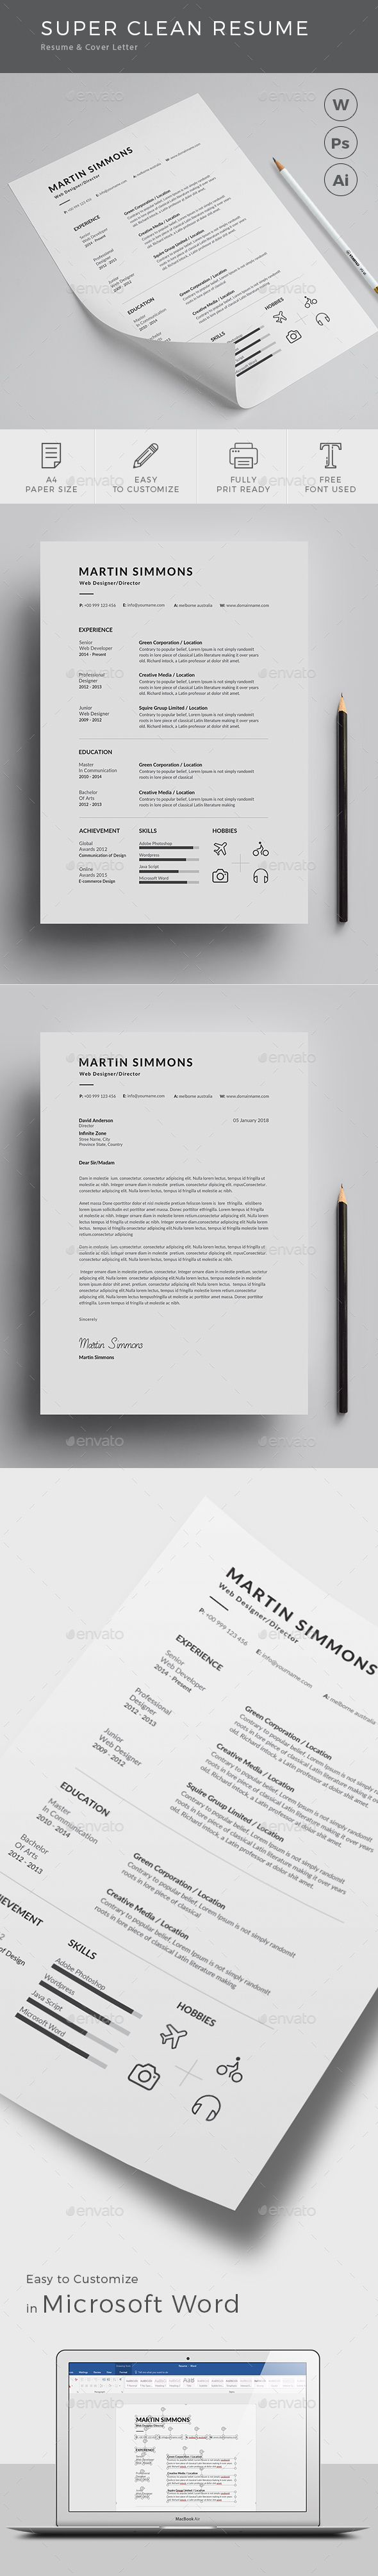 classic resume template microsoft word%0A Resume